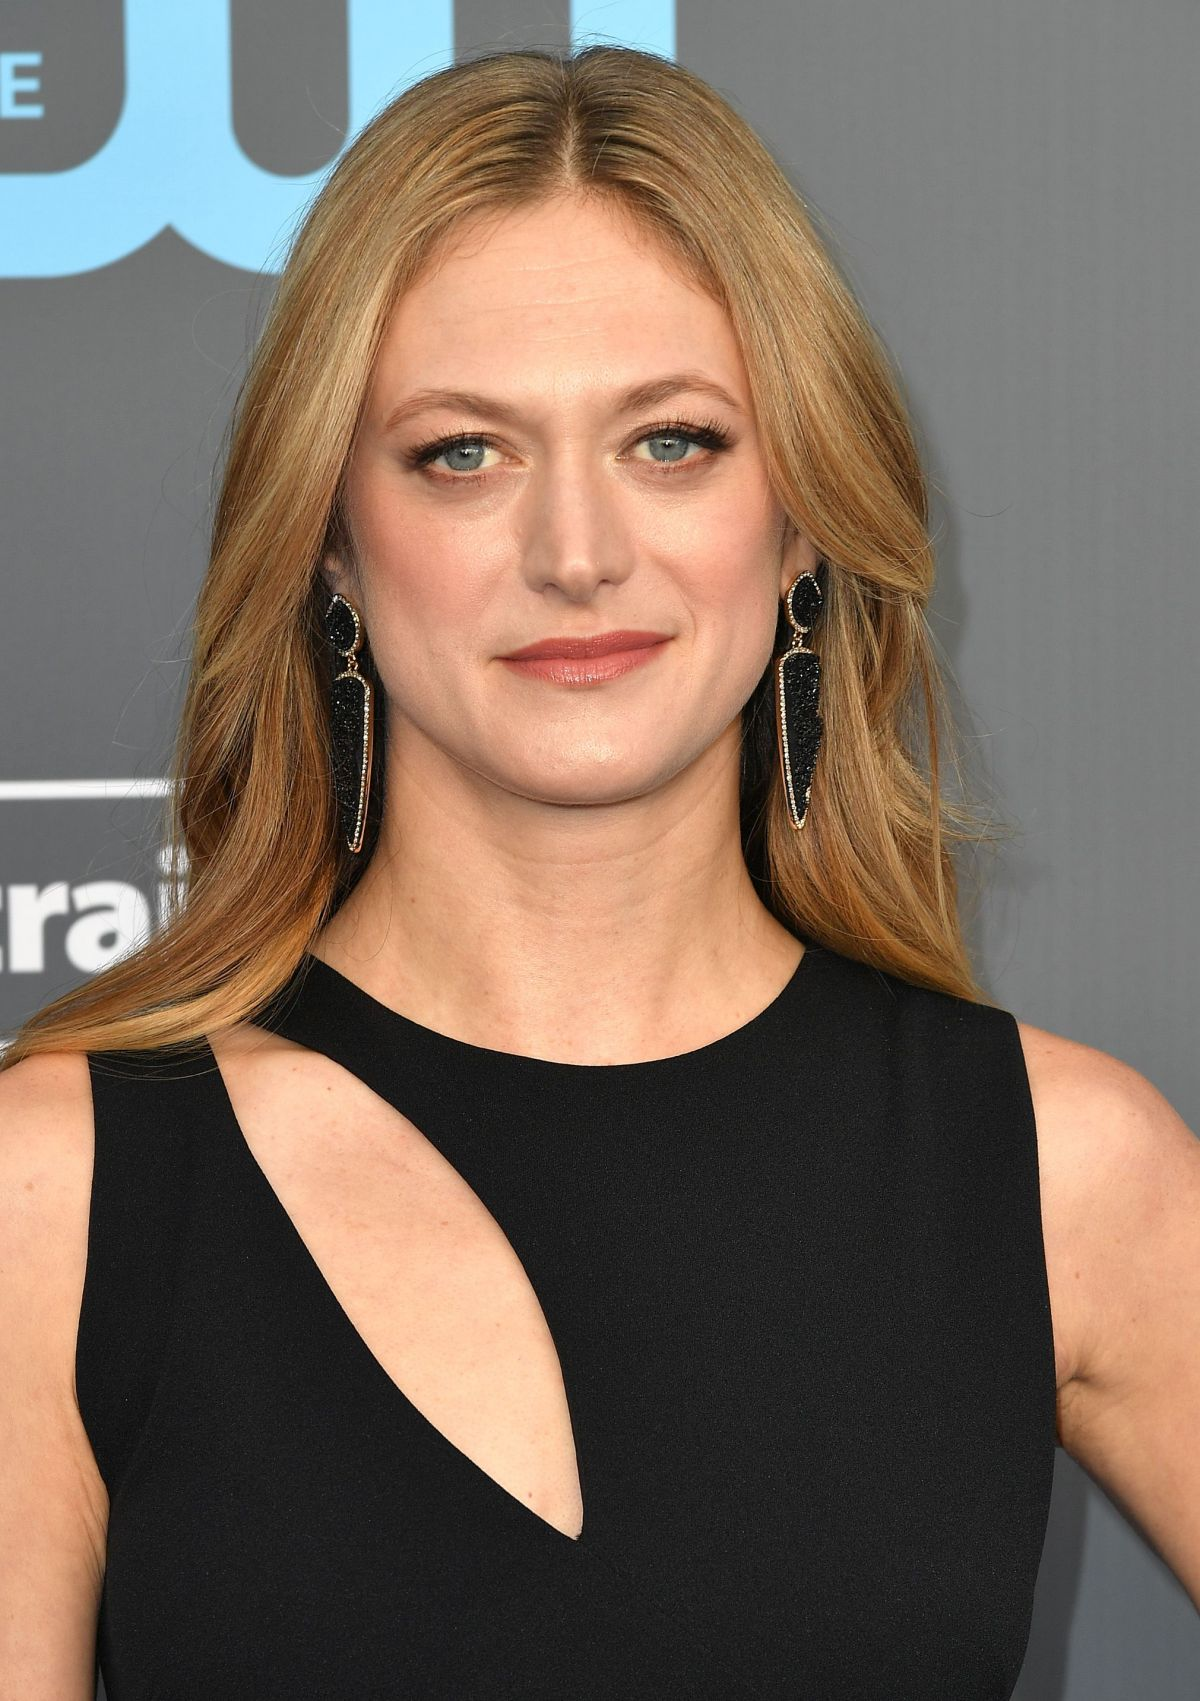 Images Marin Ireland nudes (85 photos), Ass, Leaked, Boobs, cleavage 2019